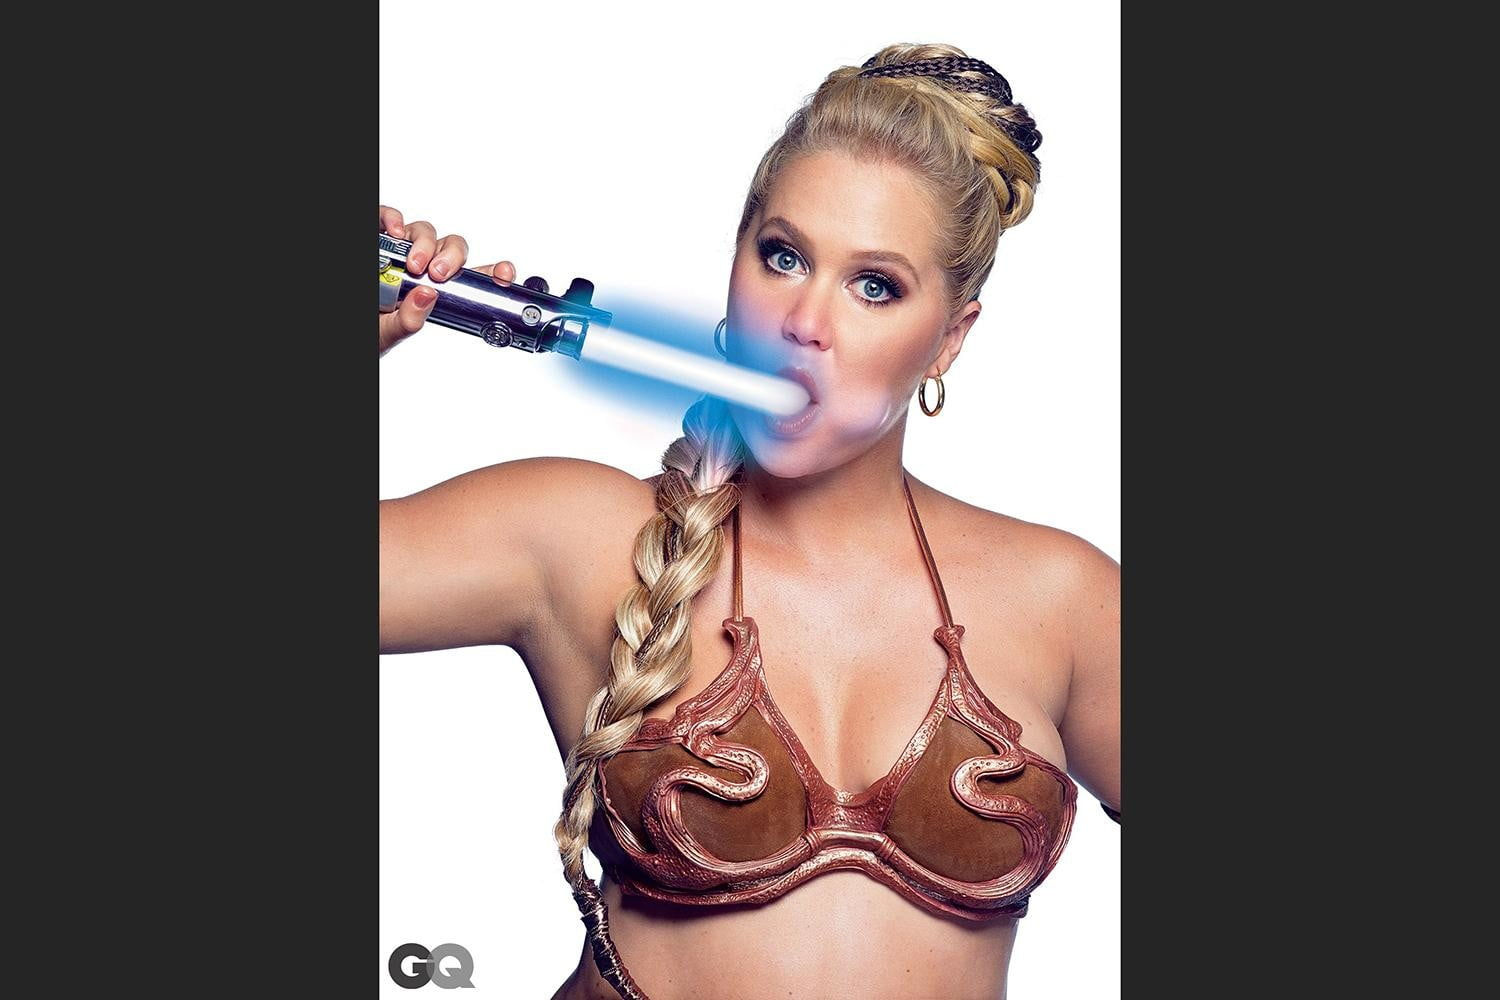 amy schumer risque star wars photo shoot gq is the funniest woman in galaxy  mark seliger 01